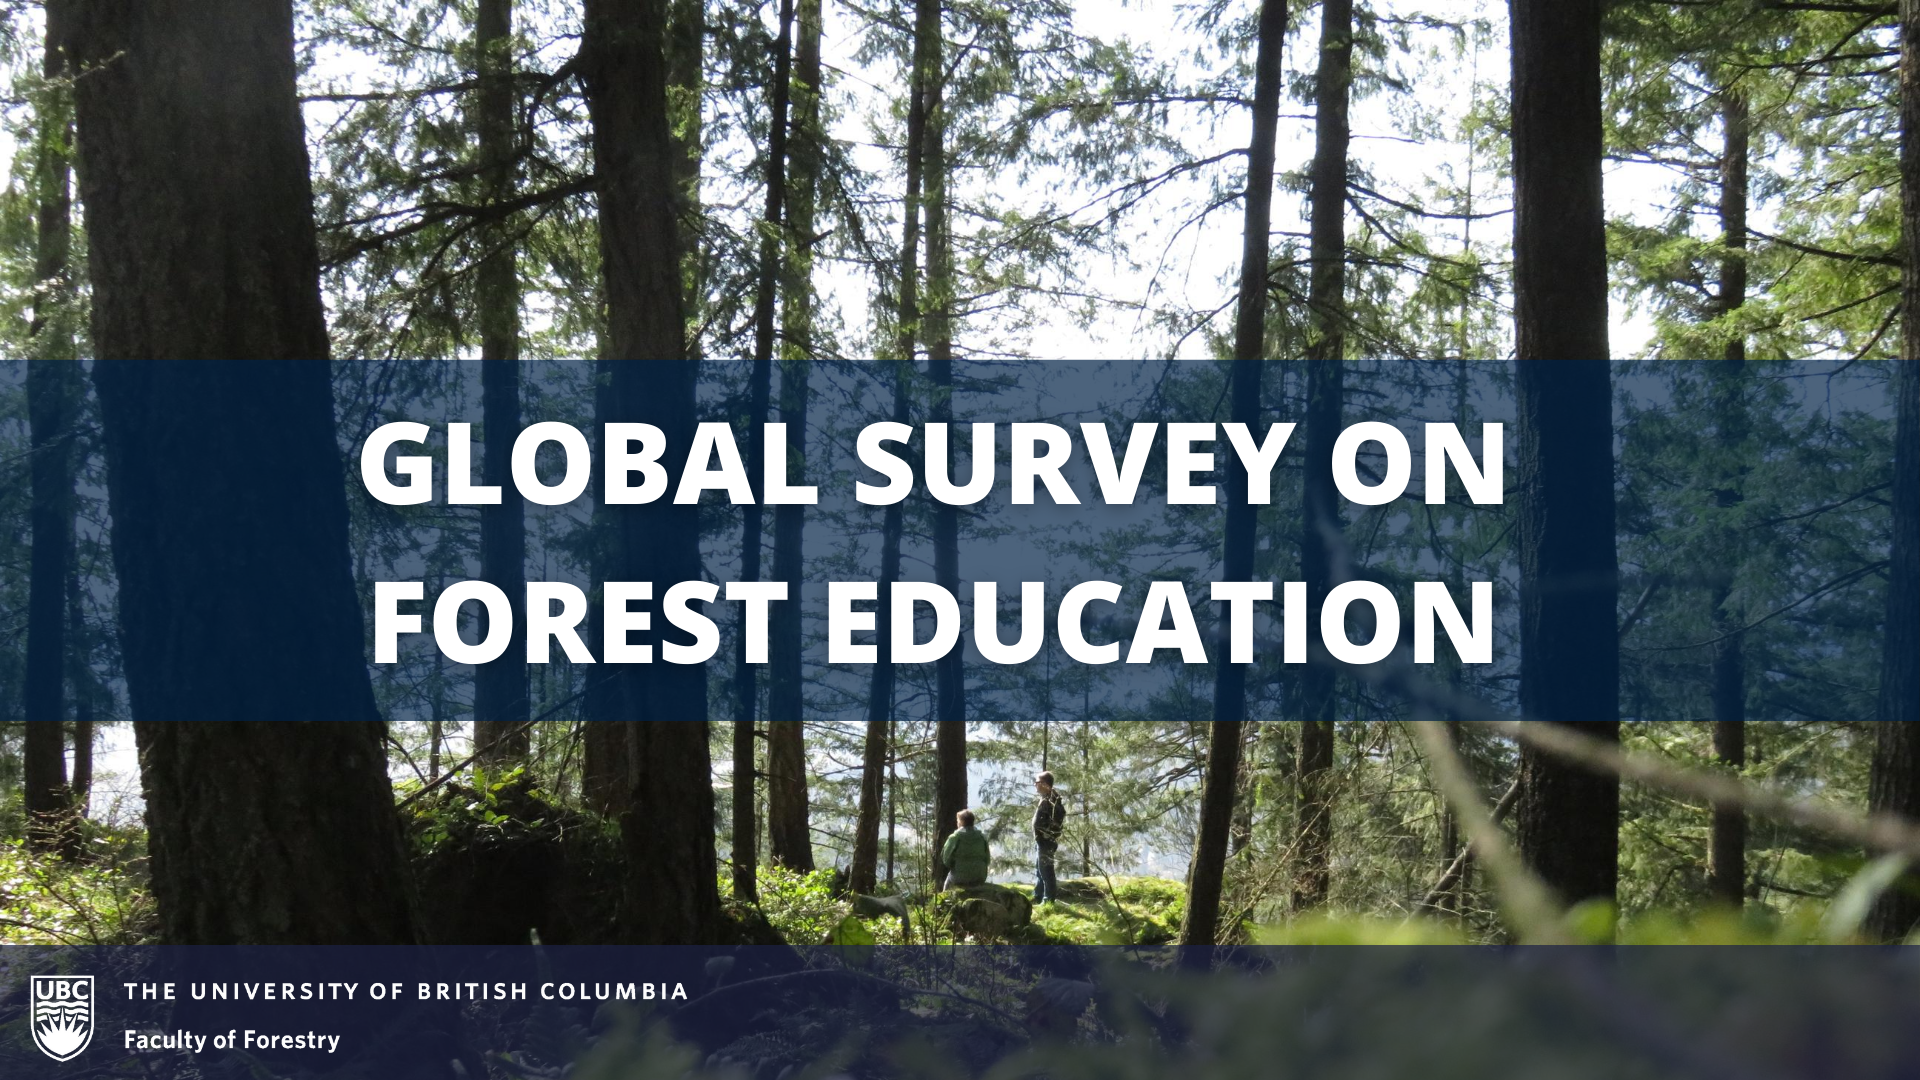 Participate in the Global Survey on Forest Education